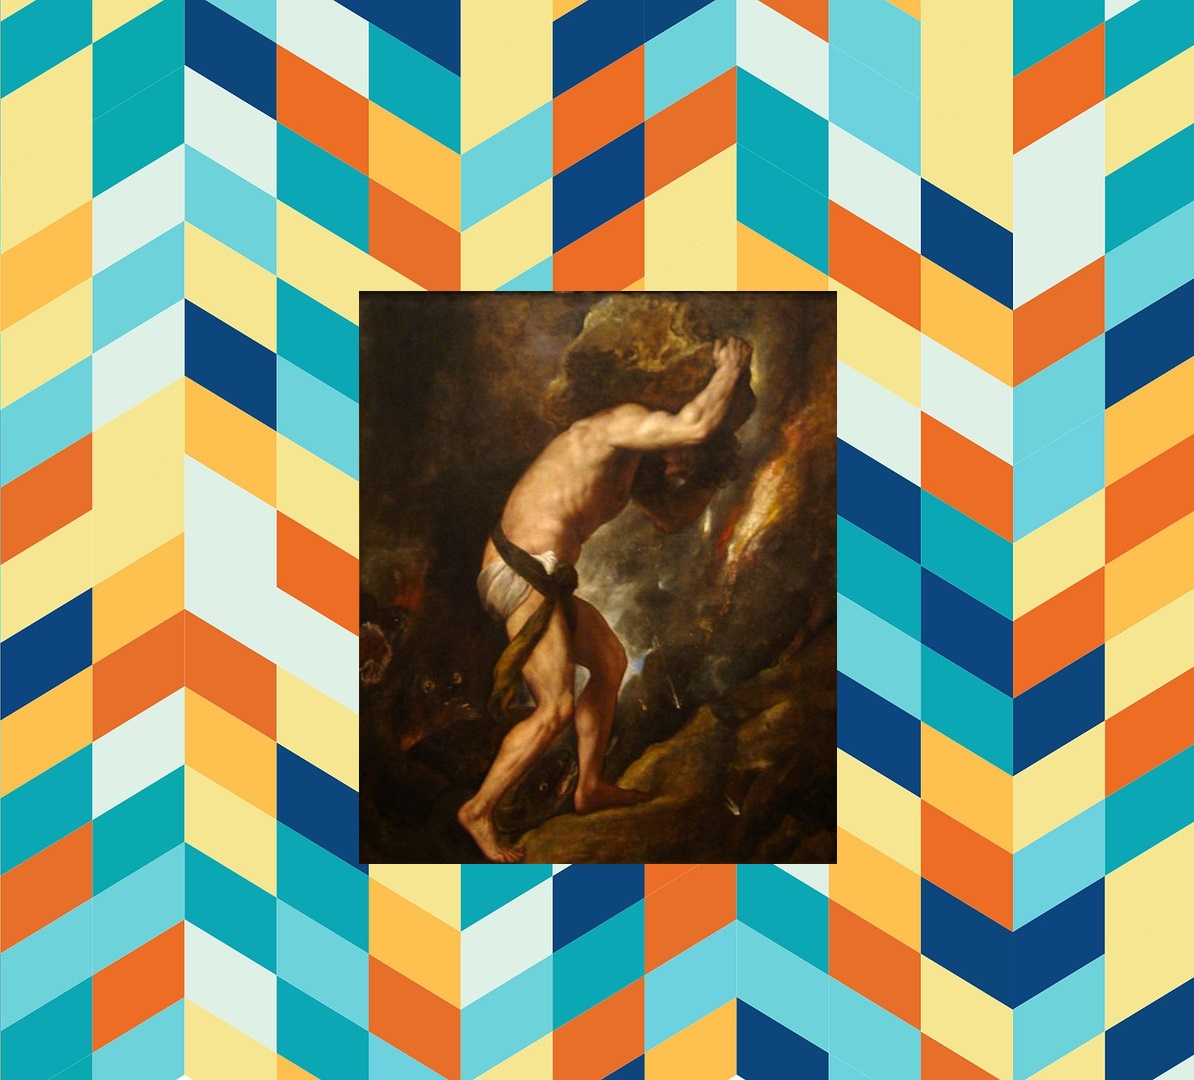 Sisyphus on geometric background